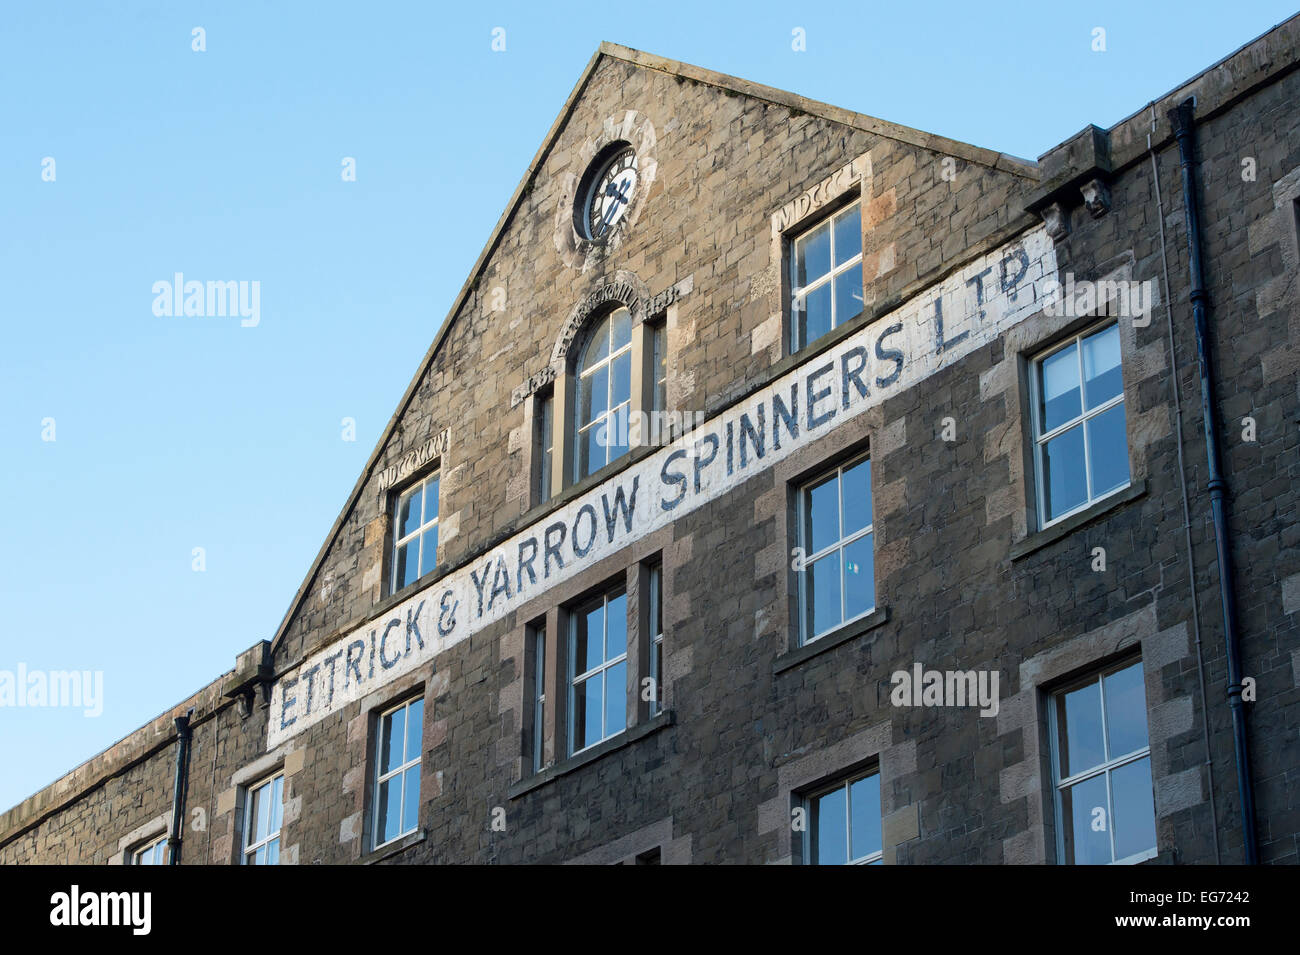 Former Ettrick and Yarrow spinners mill in Selkirk, Scottish Borders, Scotland - Stock Image